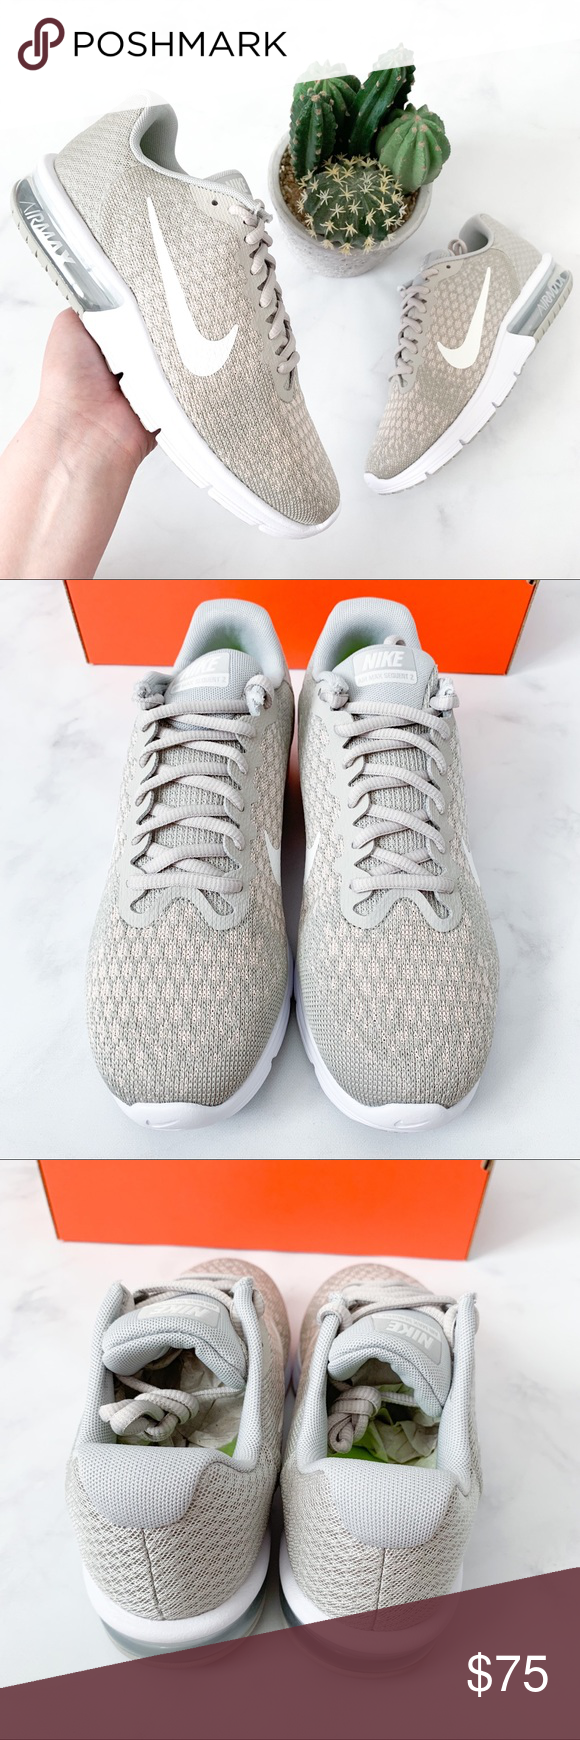 7dfc293c5ba Woman s Nike Air Max Sequent 2 Sneakers Brand new in original box! 100%  Authentic with new shoe smell! 👃 (0032) PRODUCT DETAILS  •Size  7.5 (1)